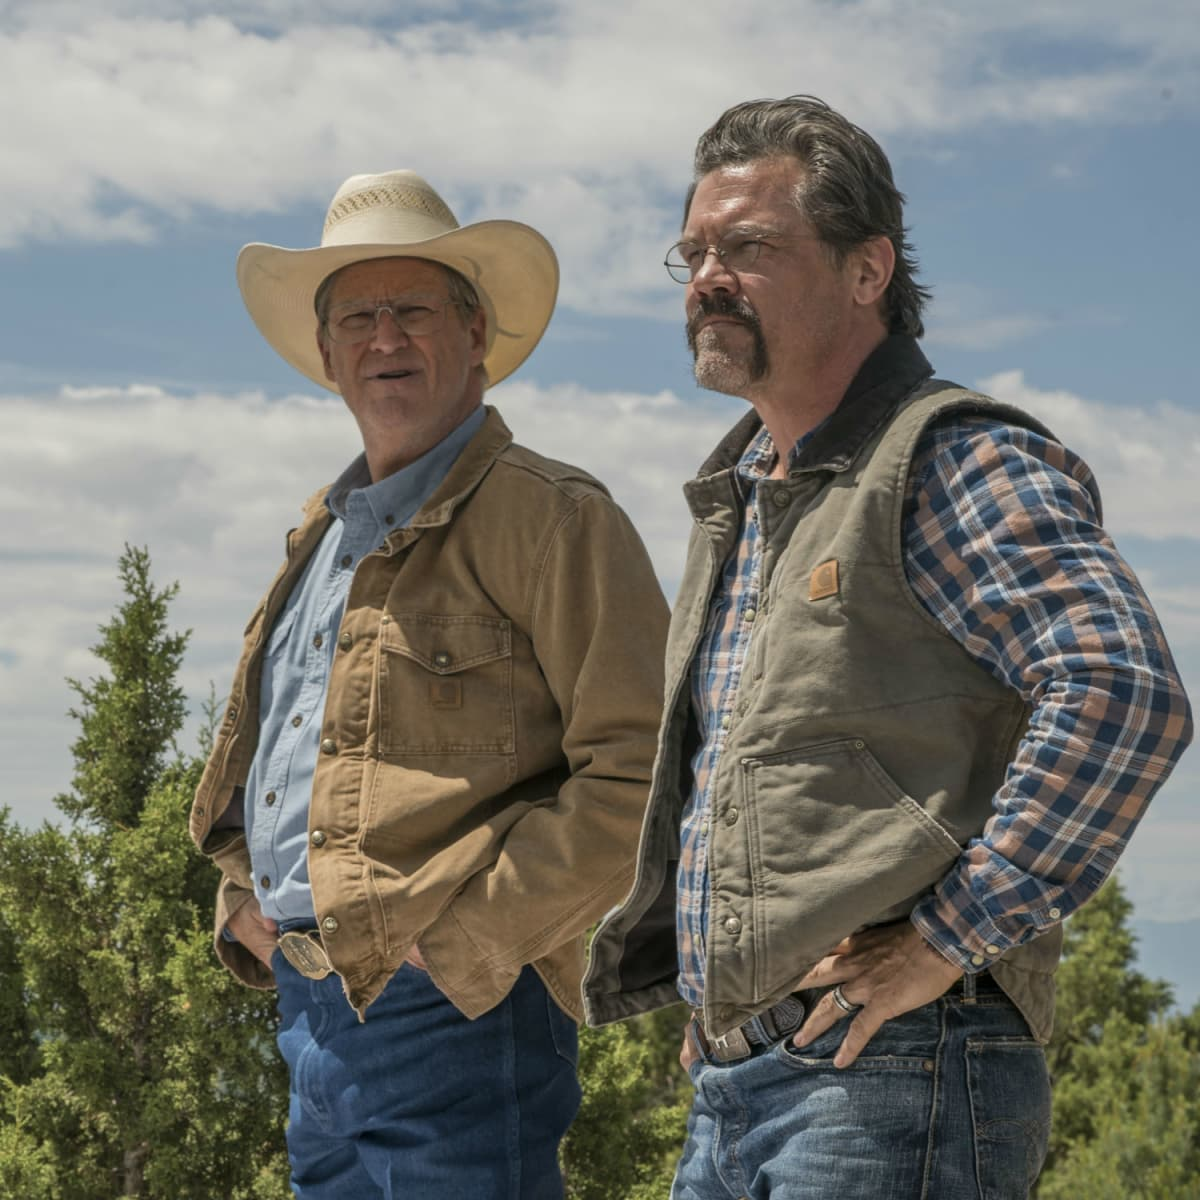 Jeff Bridges and Josh Brolin in Only the Brave